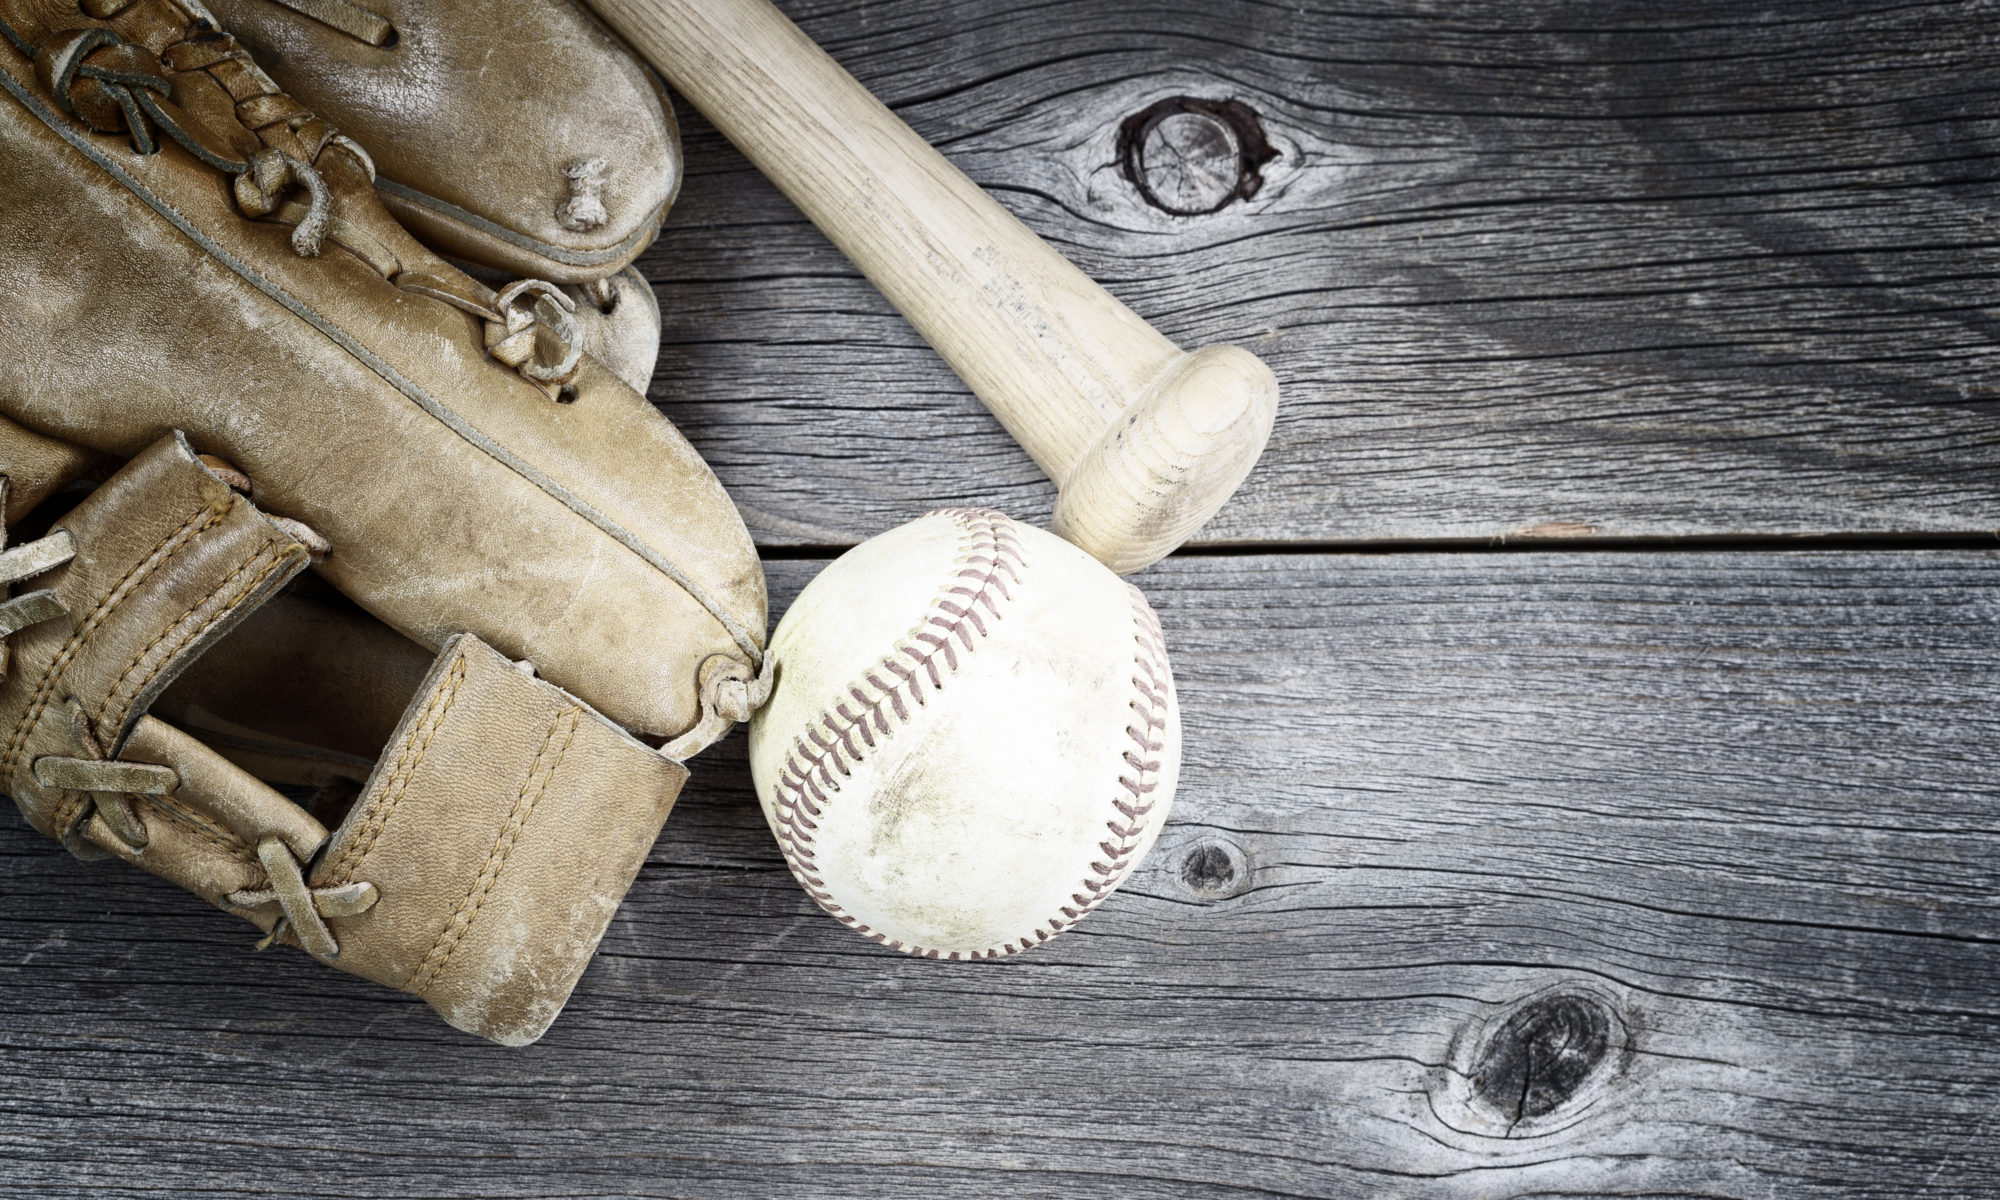 Vintage concept of old worn glove, bat and used baseball on rustic wood